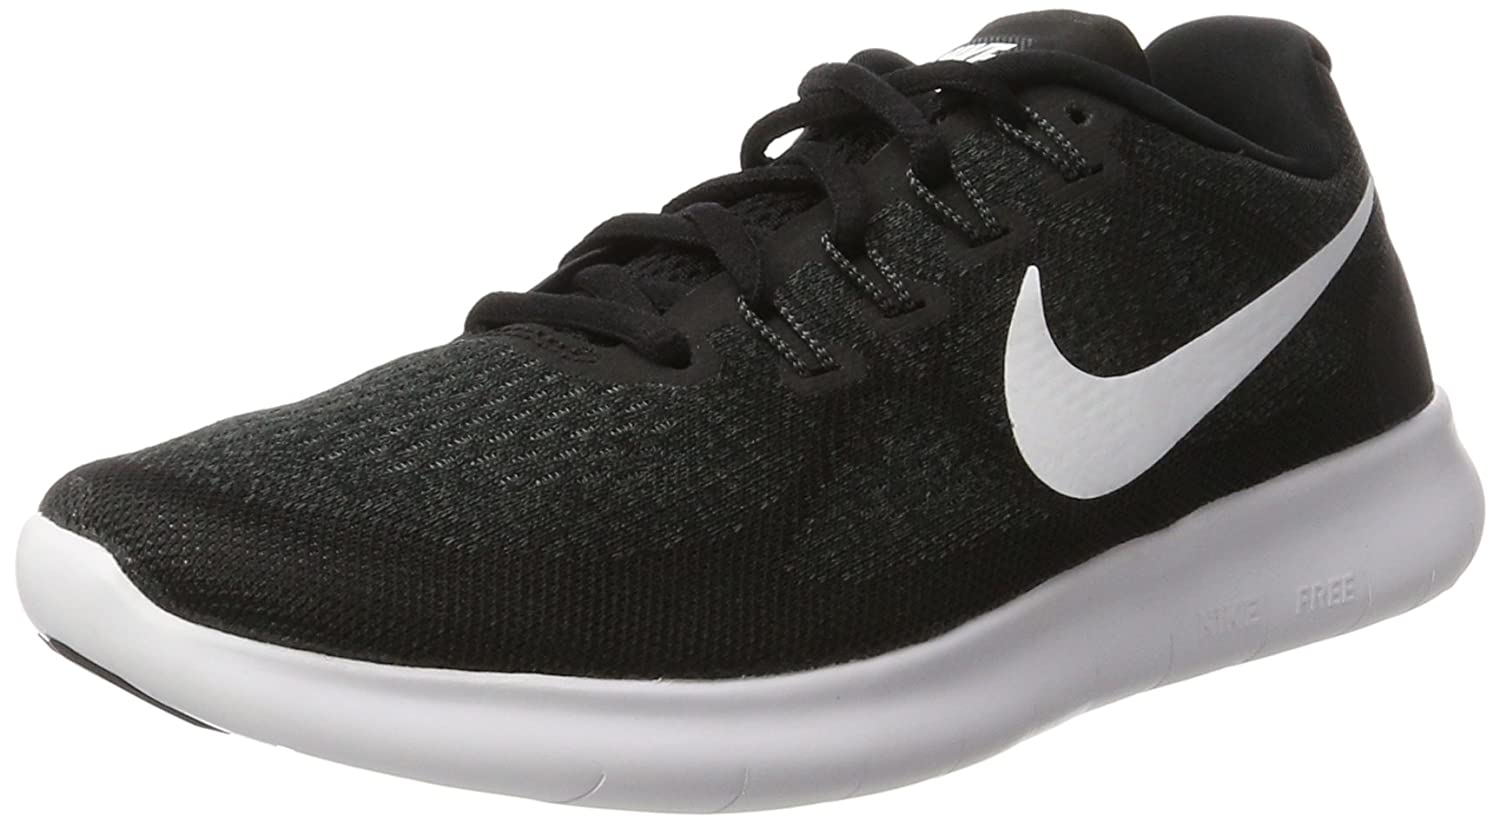 00631495c5a84 Amazon.com | NIKE Men's Free RN Running Shoe | Road Running